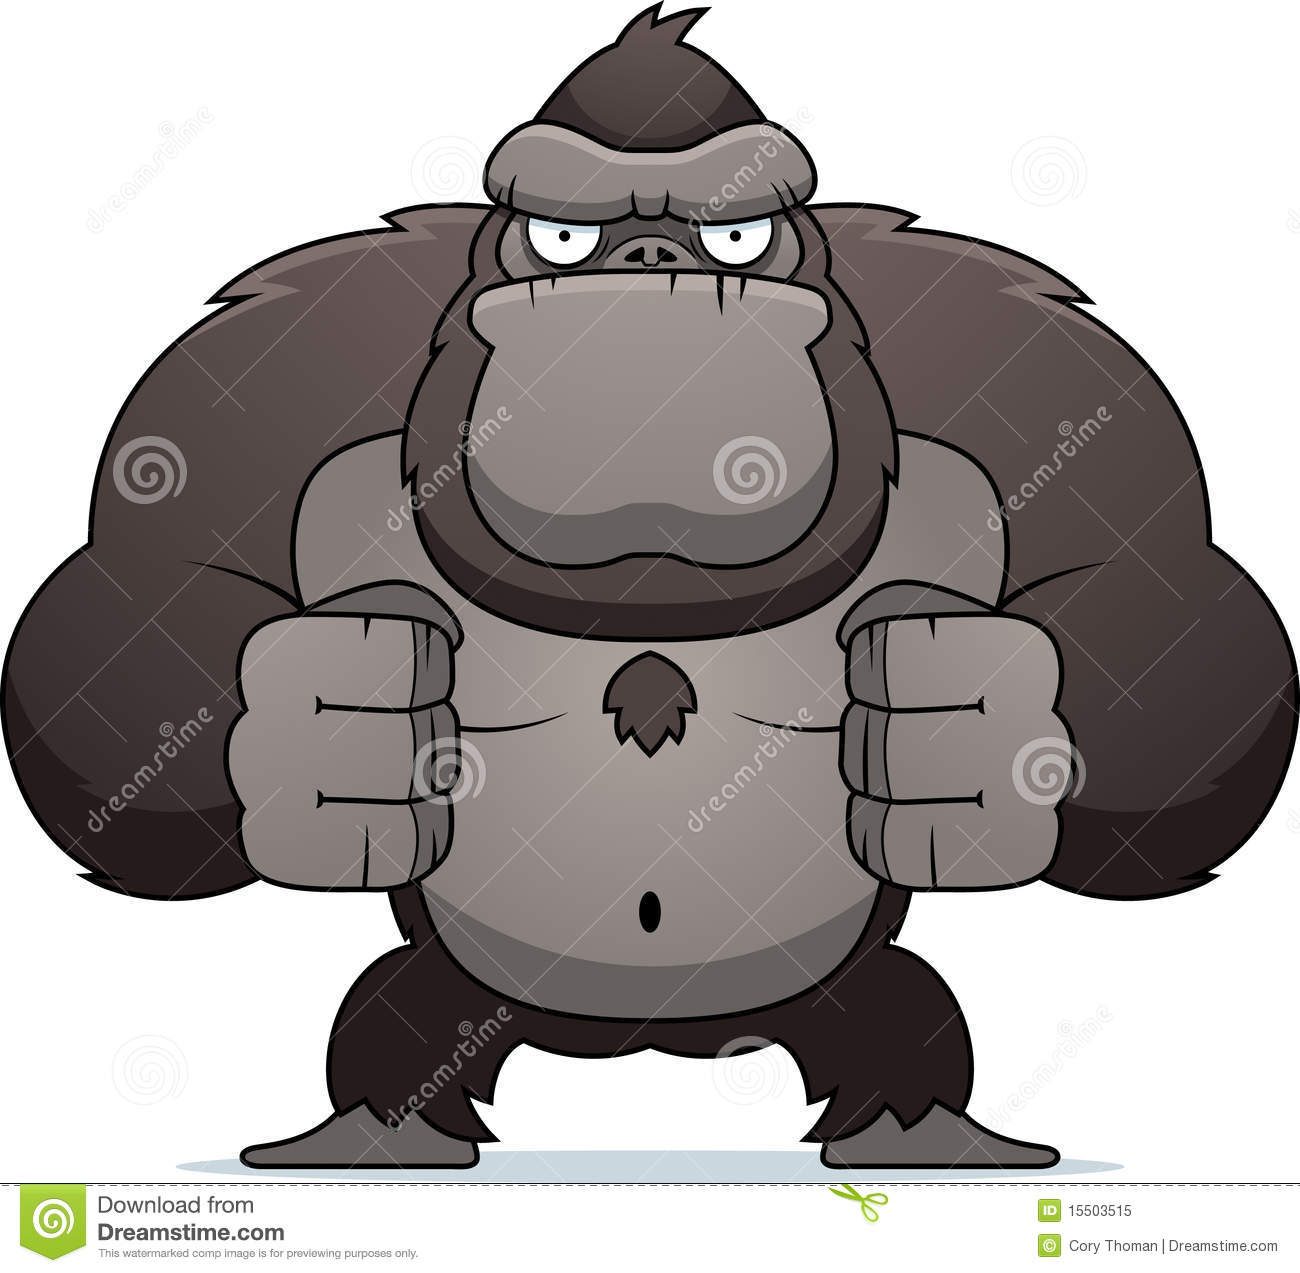 Angry Gorilla Royalty Free Stock Photo - Image: 15503515